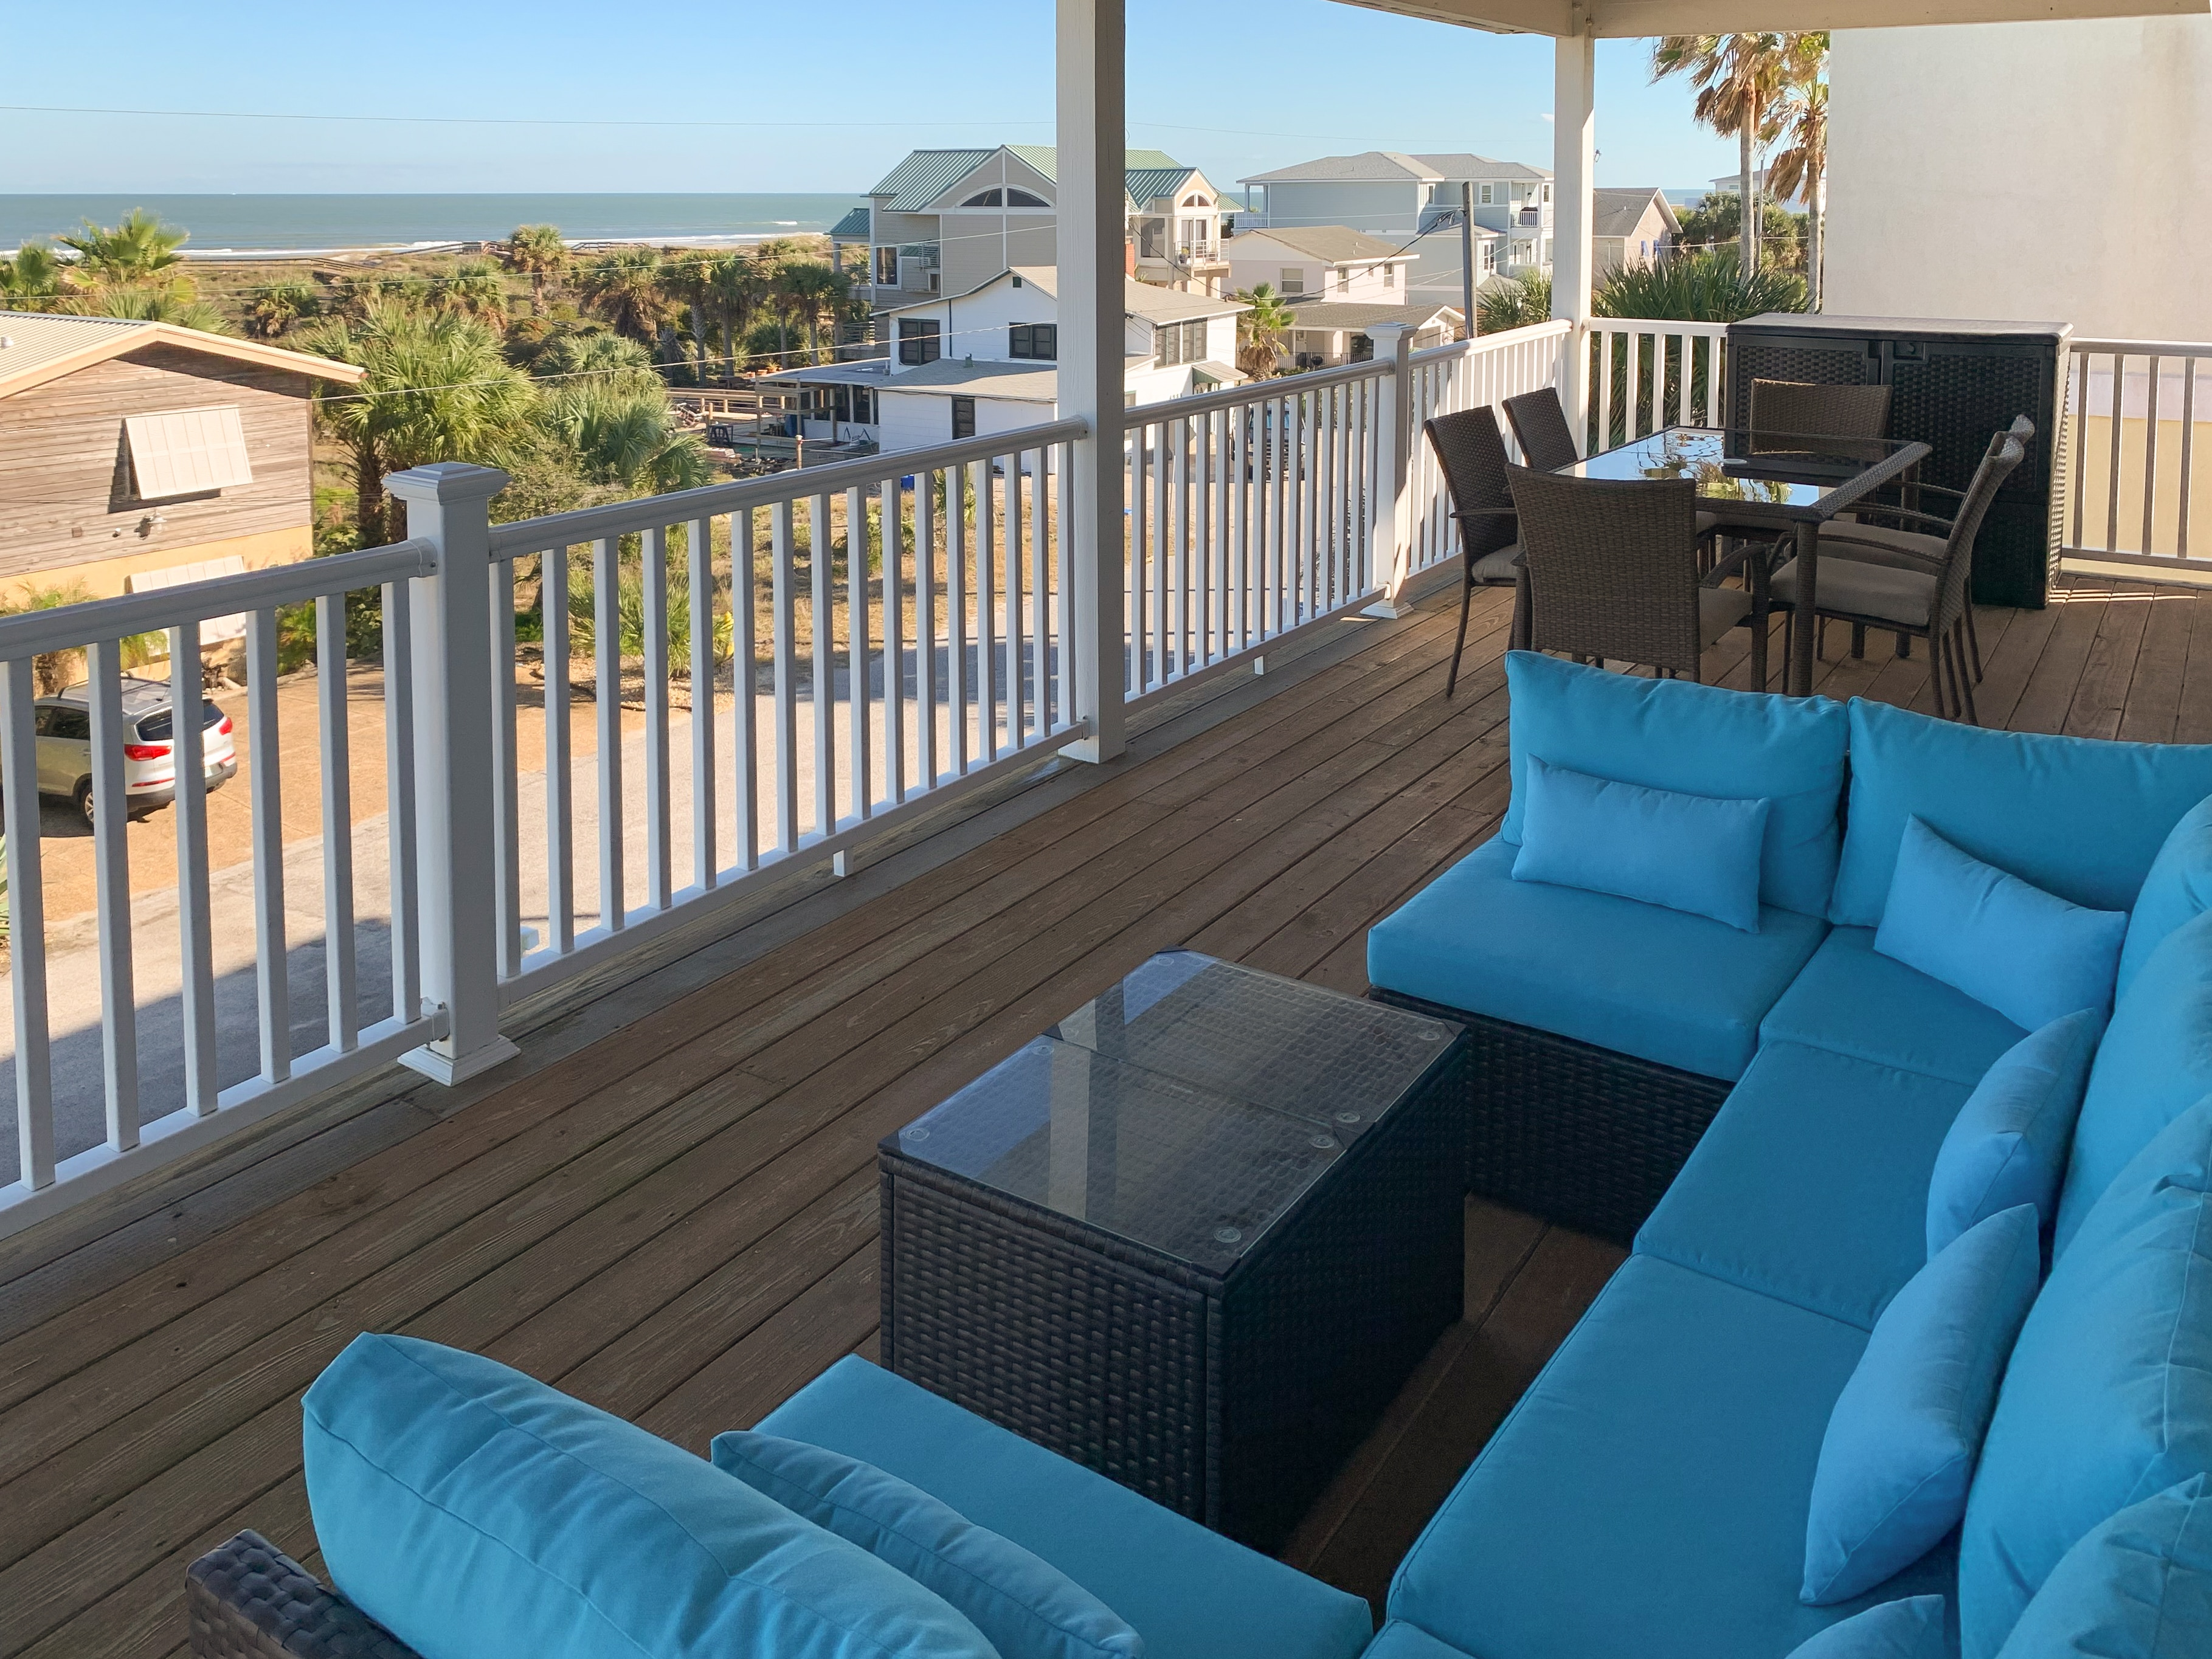 Sweeping ocean views await on the covered balcony, where a comfy sectional offers plenty of seating.